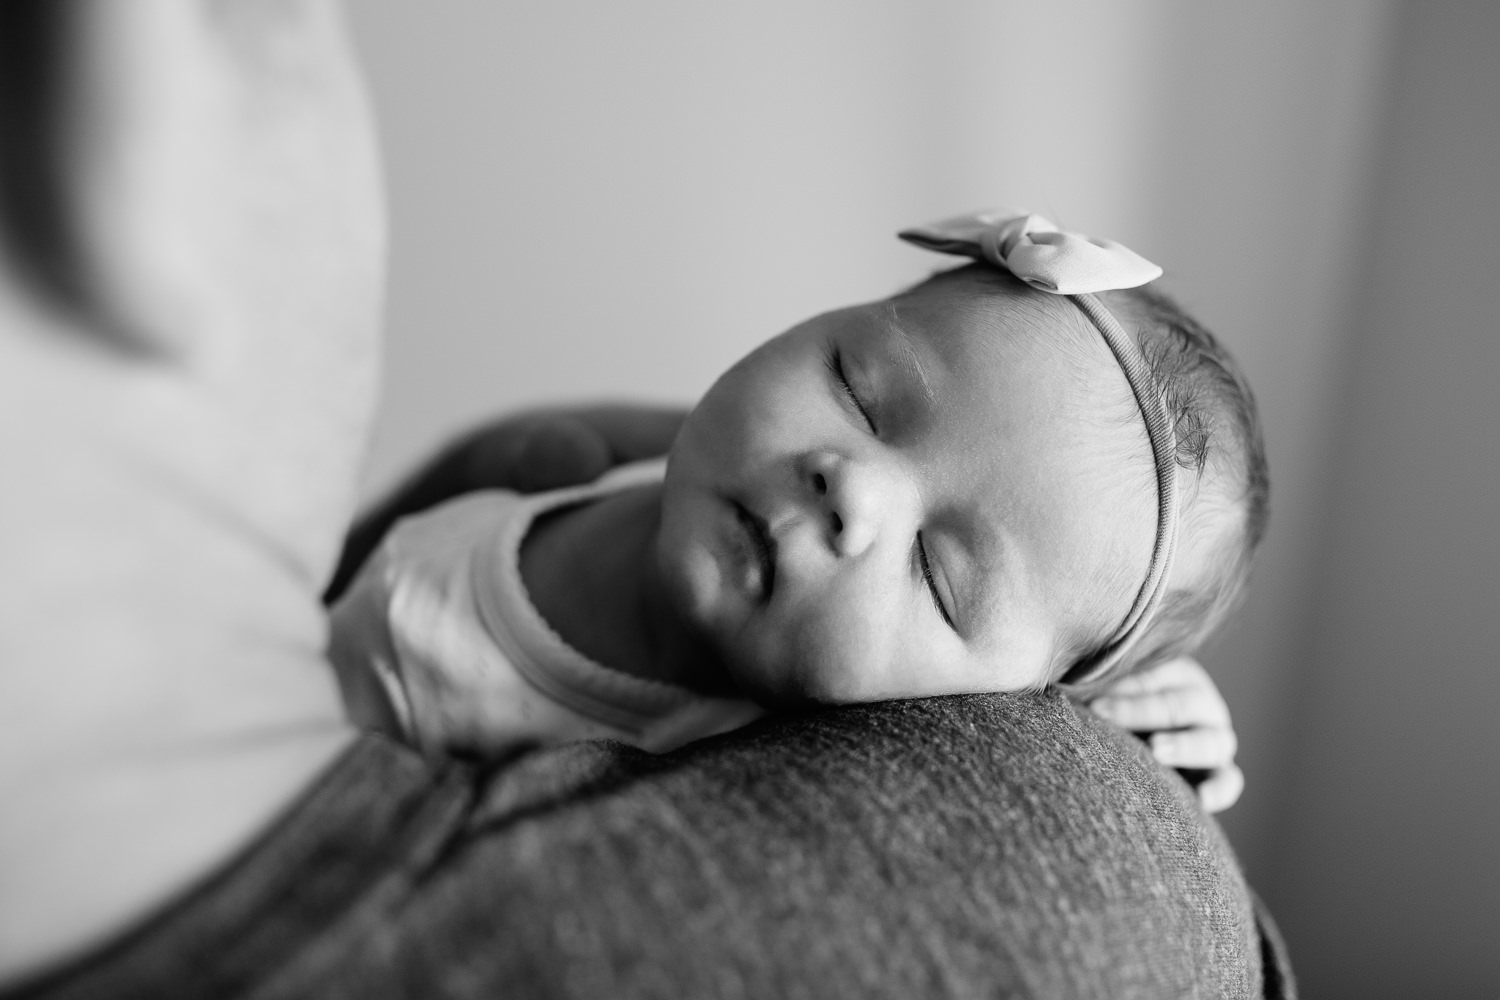 dad sitting on edge of bed holding2 week old baby girl wearing bow headband, sleeping on father's shoulder -Barrie In-Home Photography